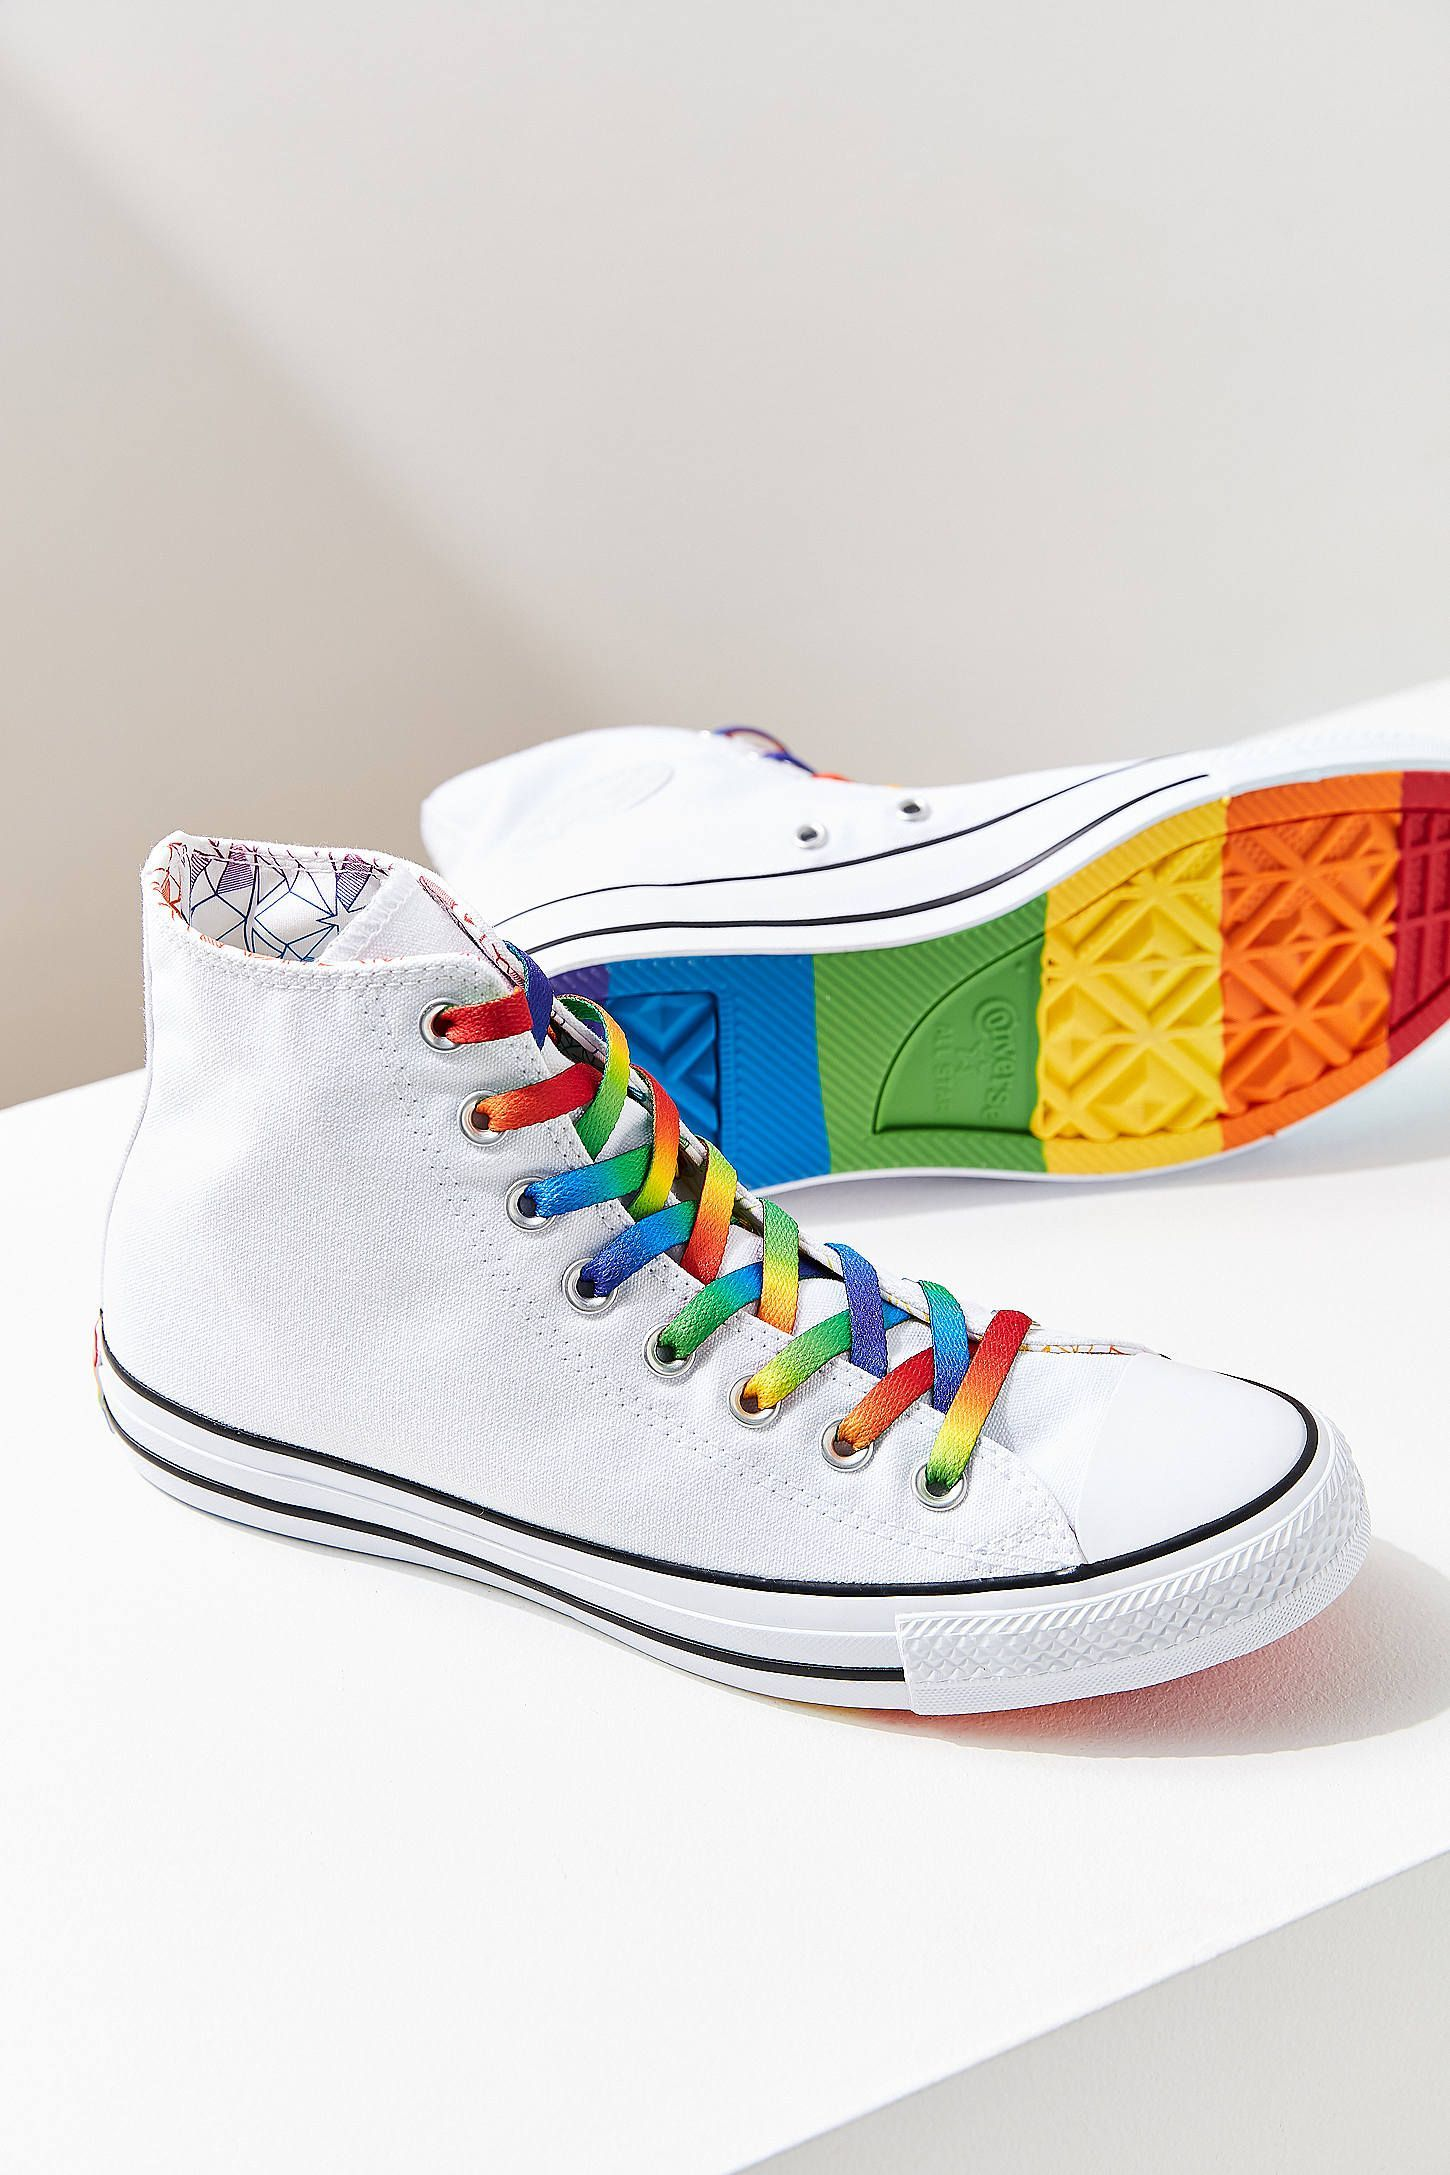 Slide View: 1: Converse Chuck Taylor All Star Pride Core